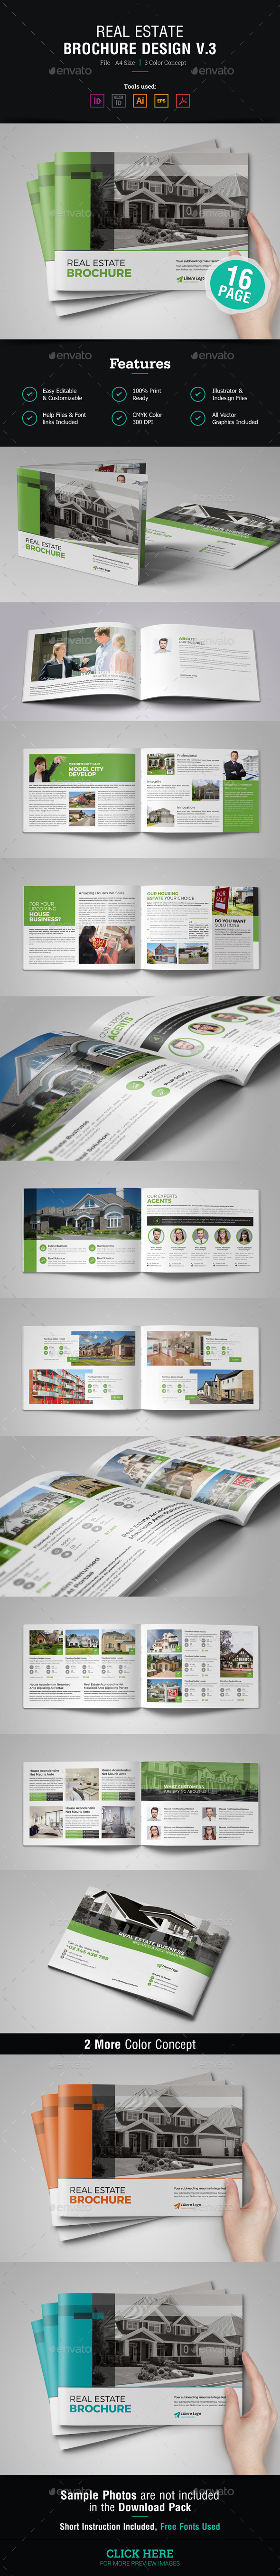 Real Estate Brochure Design v3 - Corporate Brochures